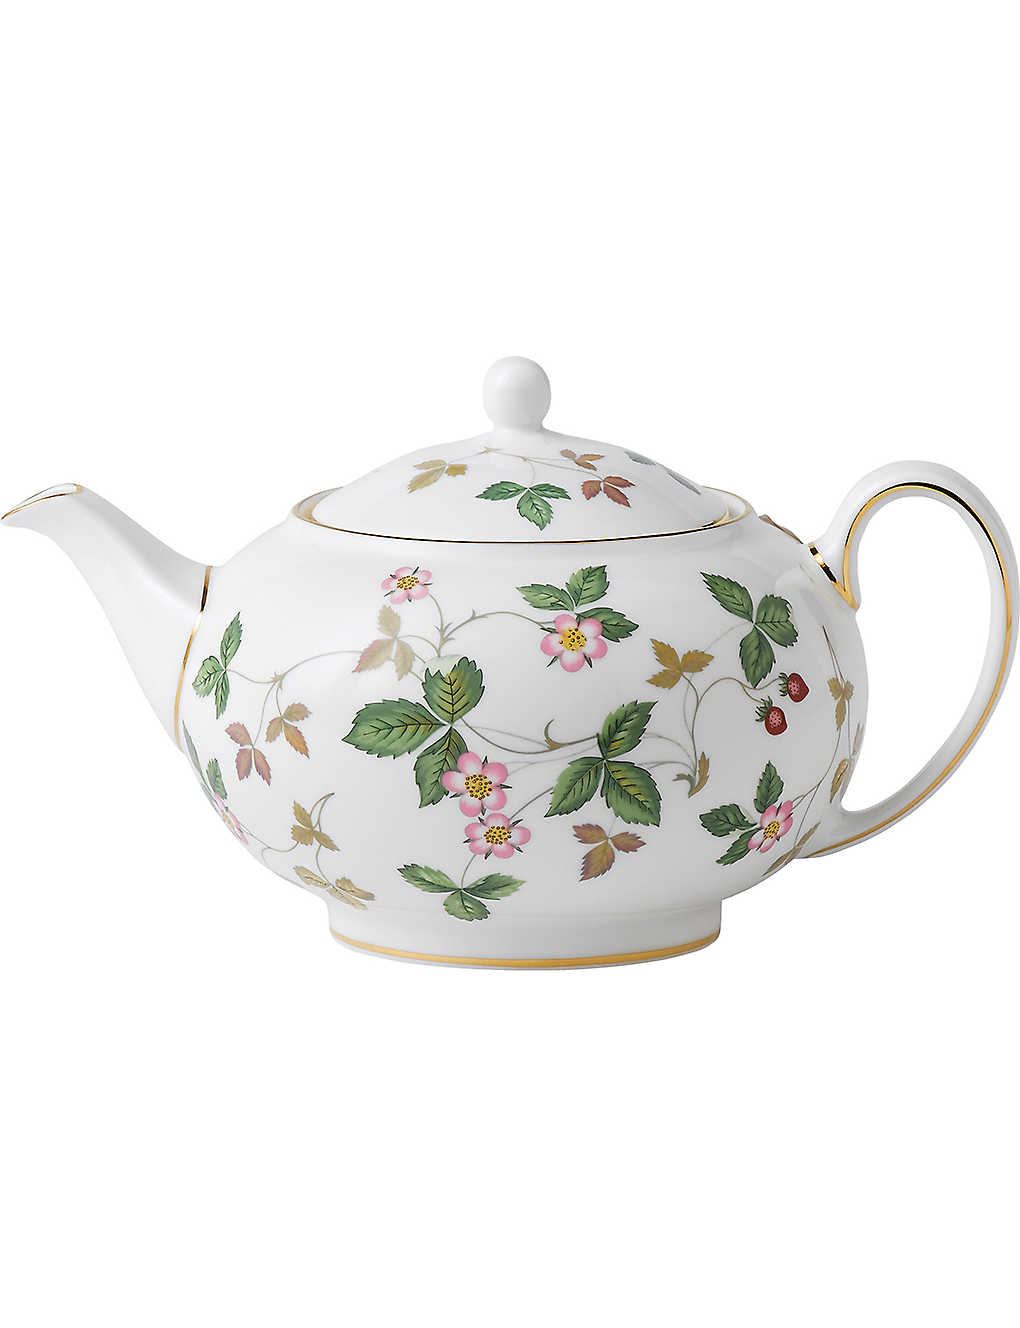 WEDGWOOD: Wild strawberry small teapot